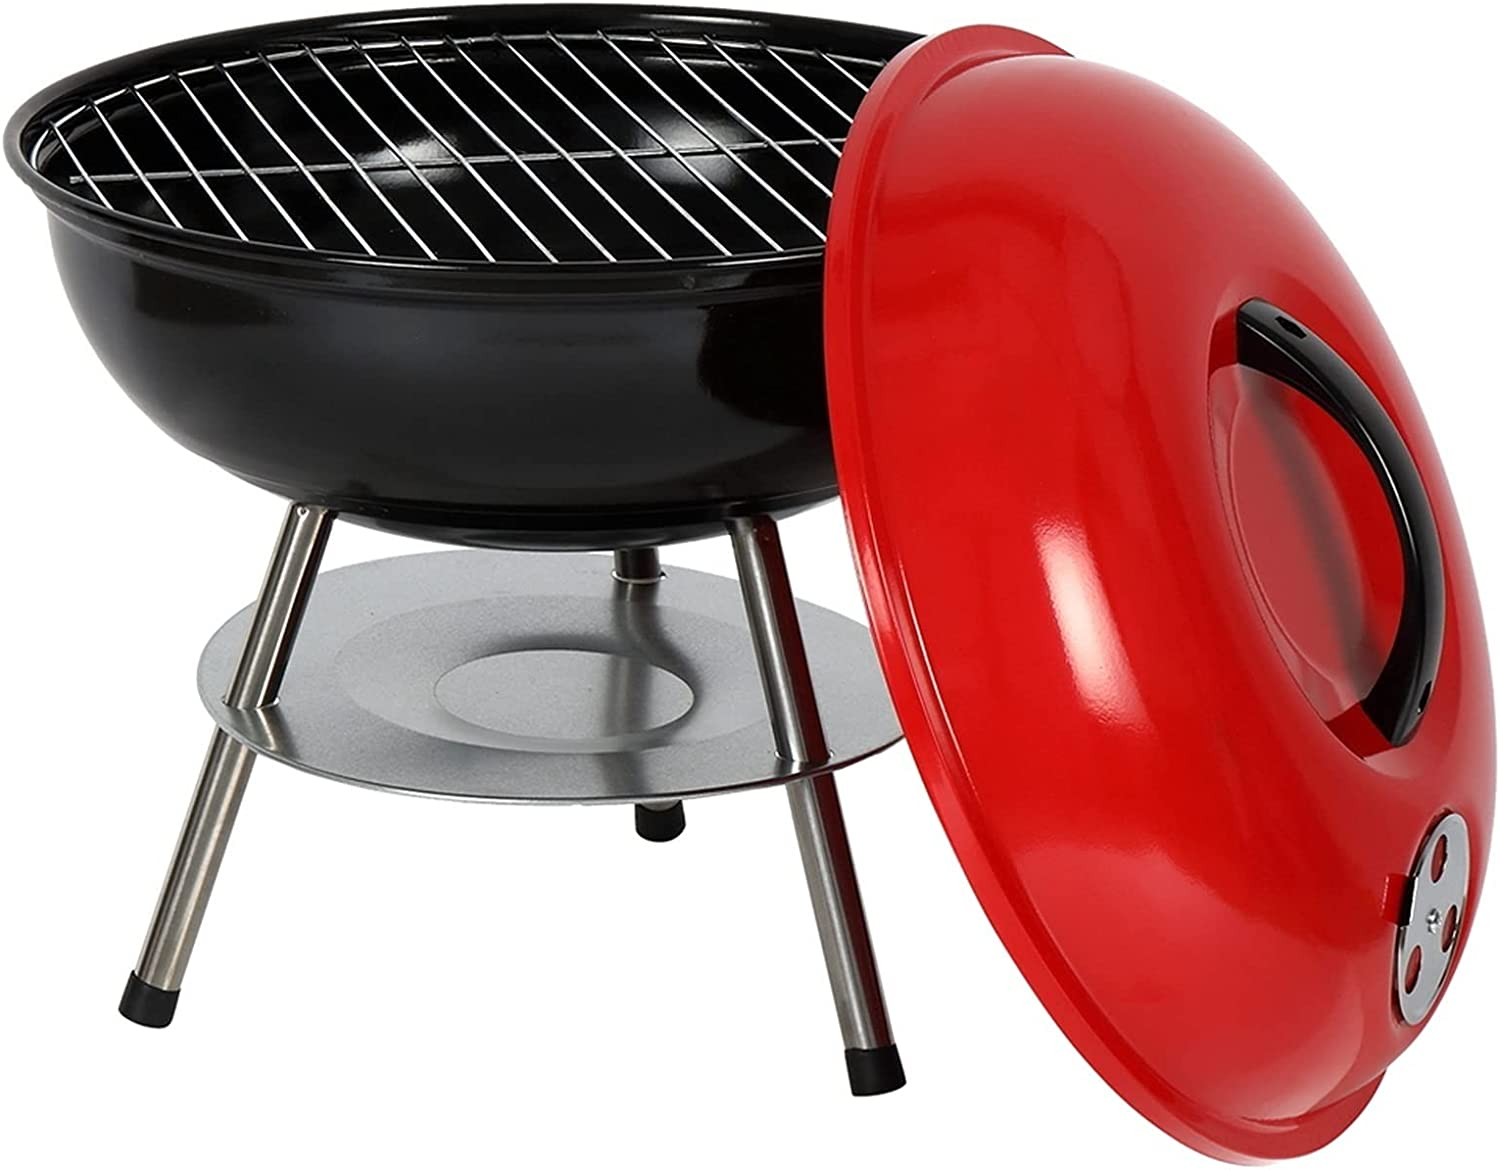 GAMYEA 55% OFF 14-inch Kettle Charcoal Grill Thicken Heavy Trust Portable Duty